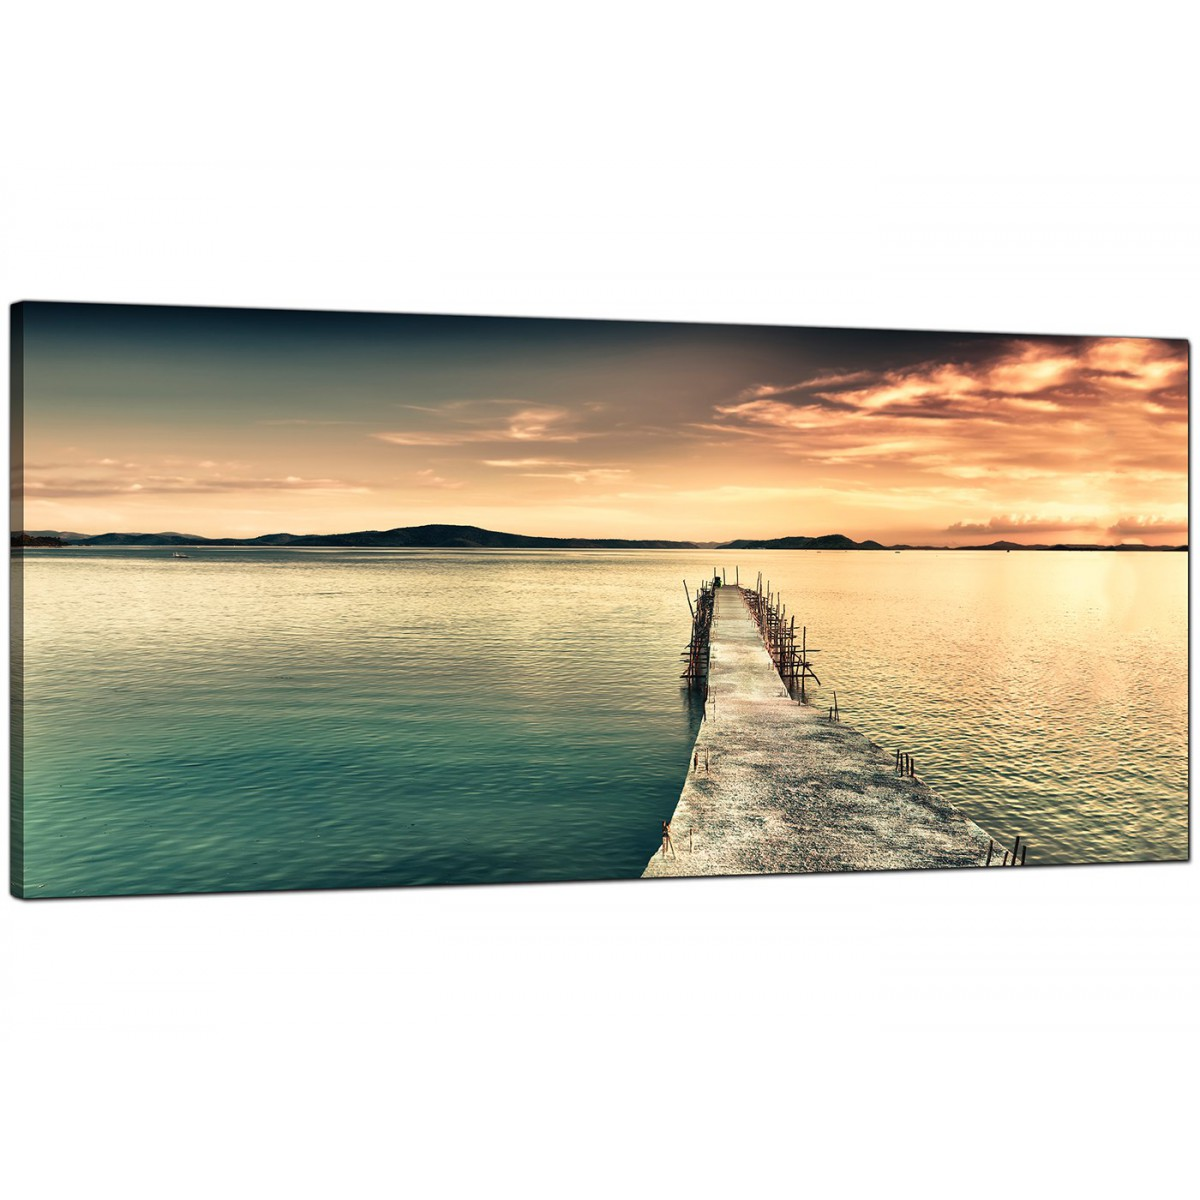 Wide Canvas Wall Art of a Lake Sunset for your Bedroom : cheap blue canvas picture uk sunrise sunset landscape wide 11081 from www.wallfillers.co.uk size 1200 x 1200 jpeg 190kB